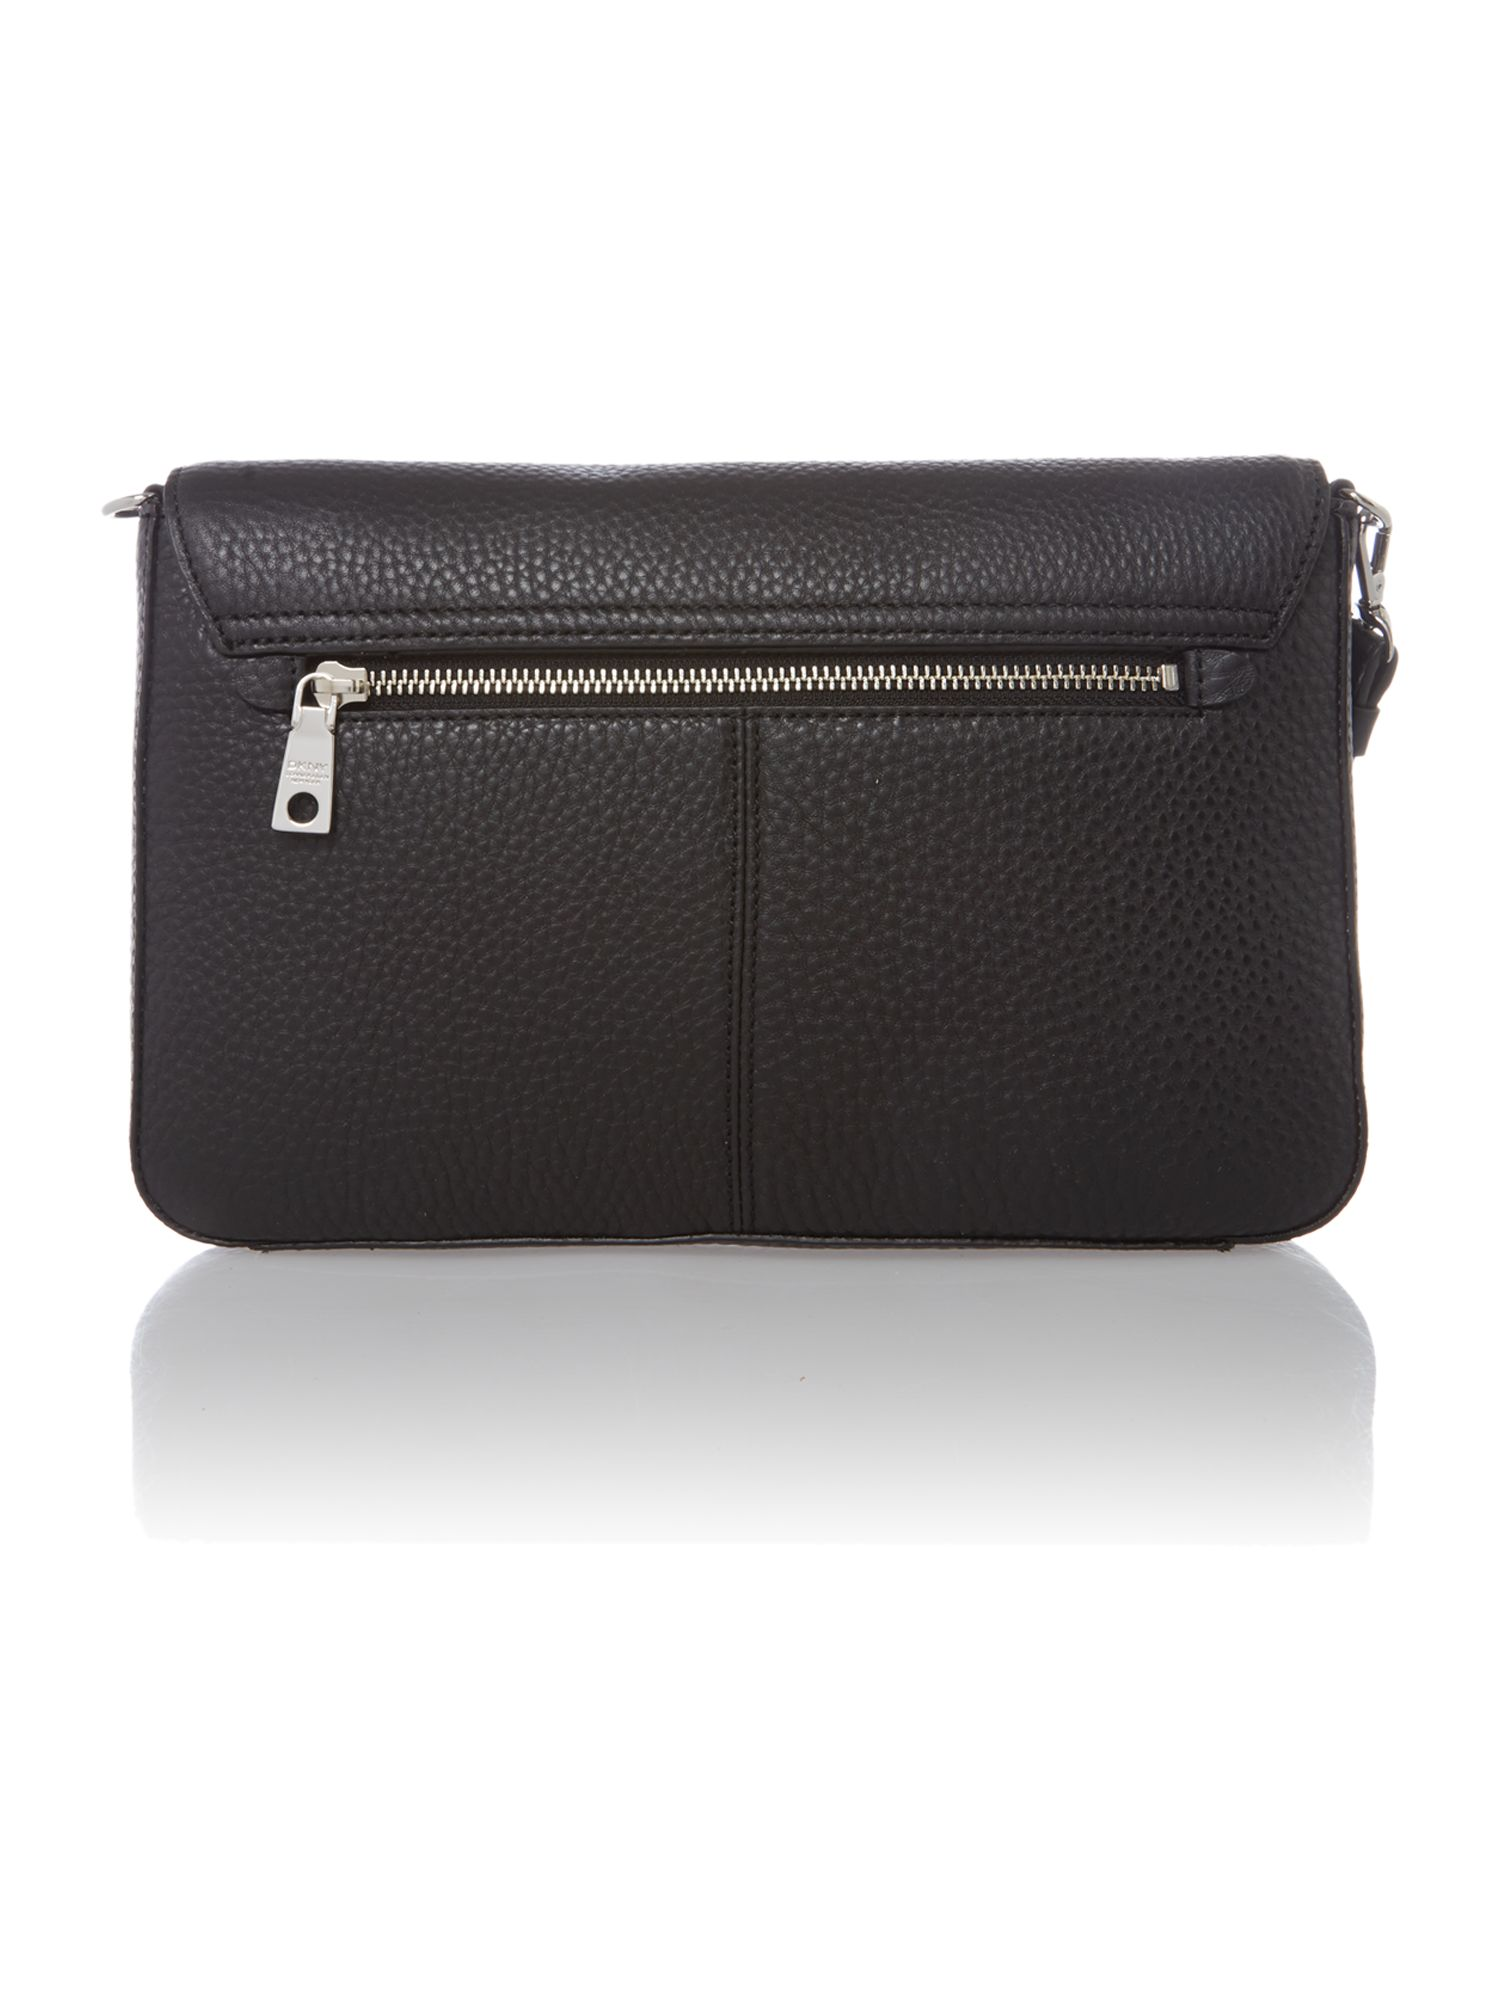 Tribeca soft black cross body bag